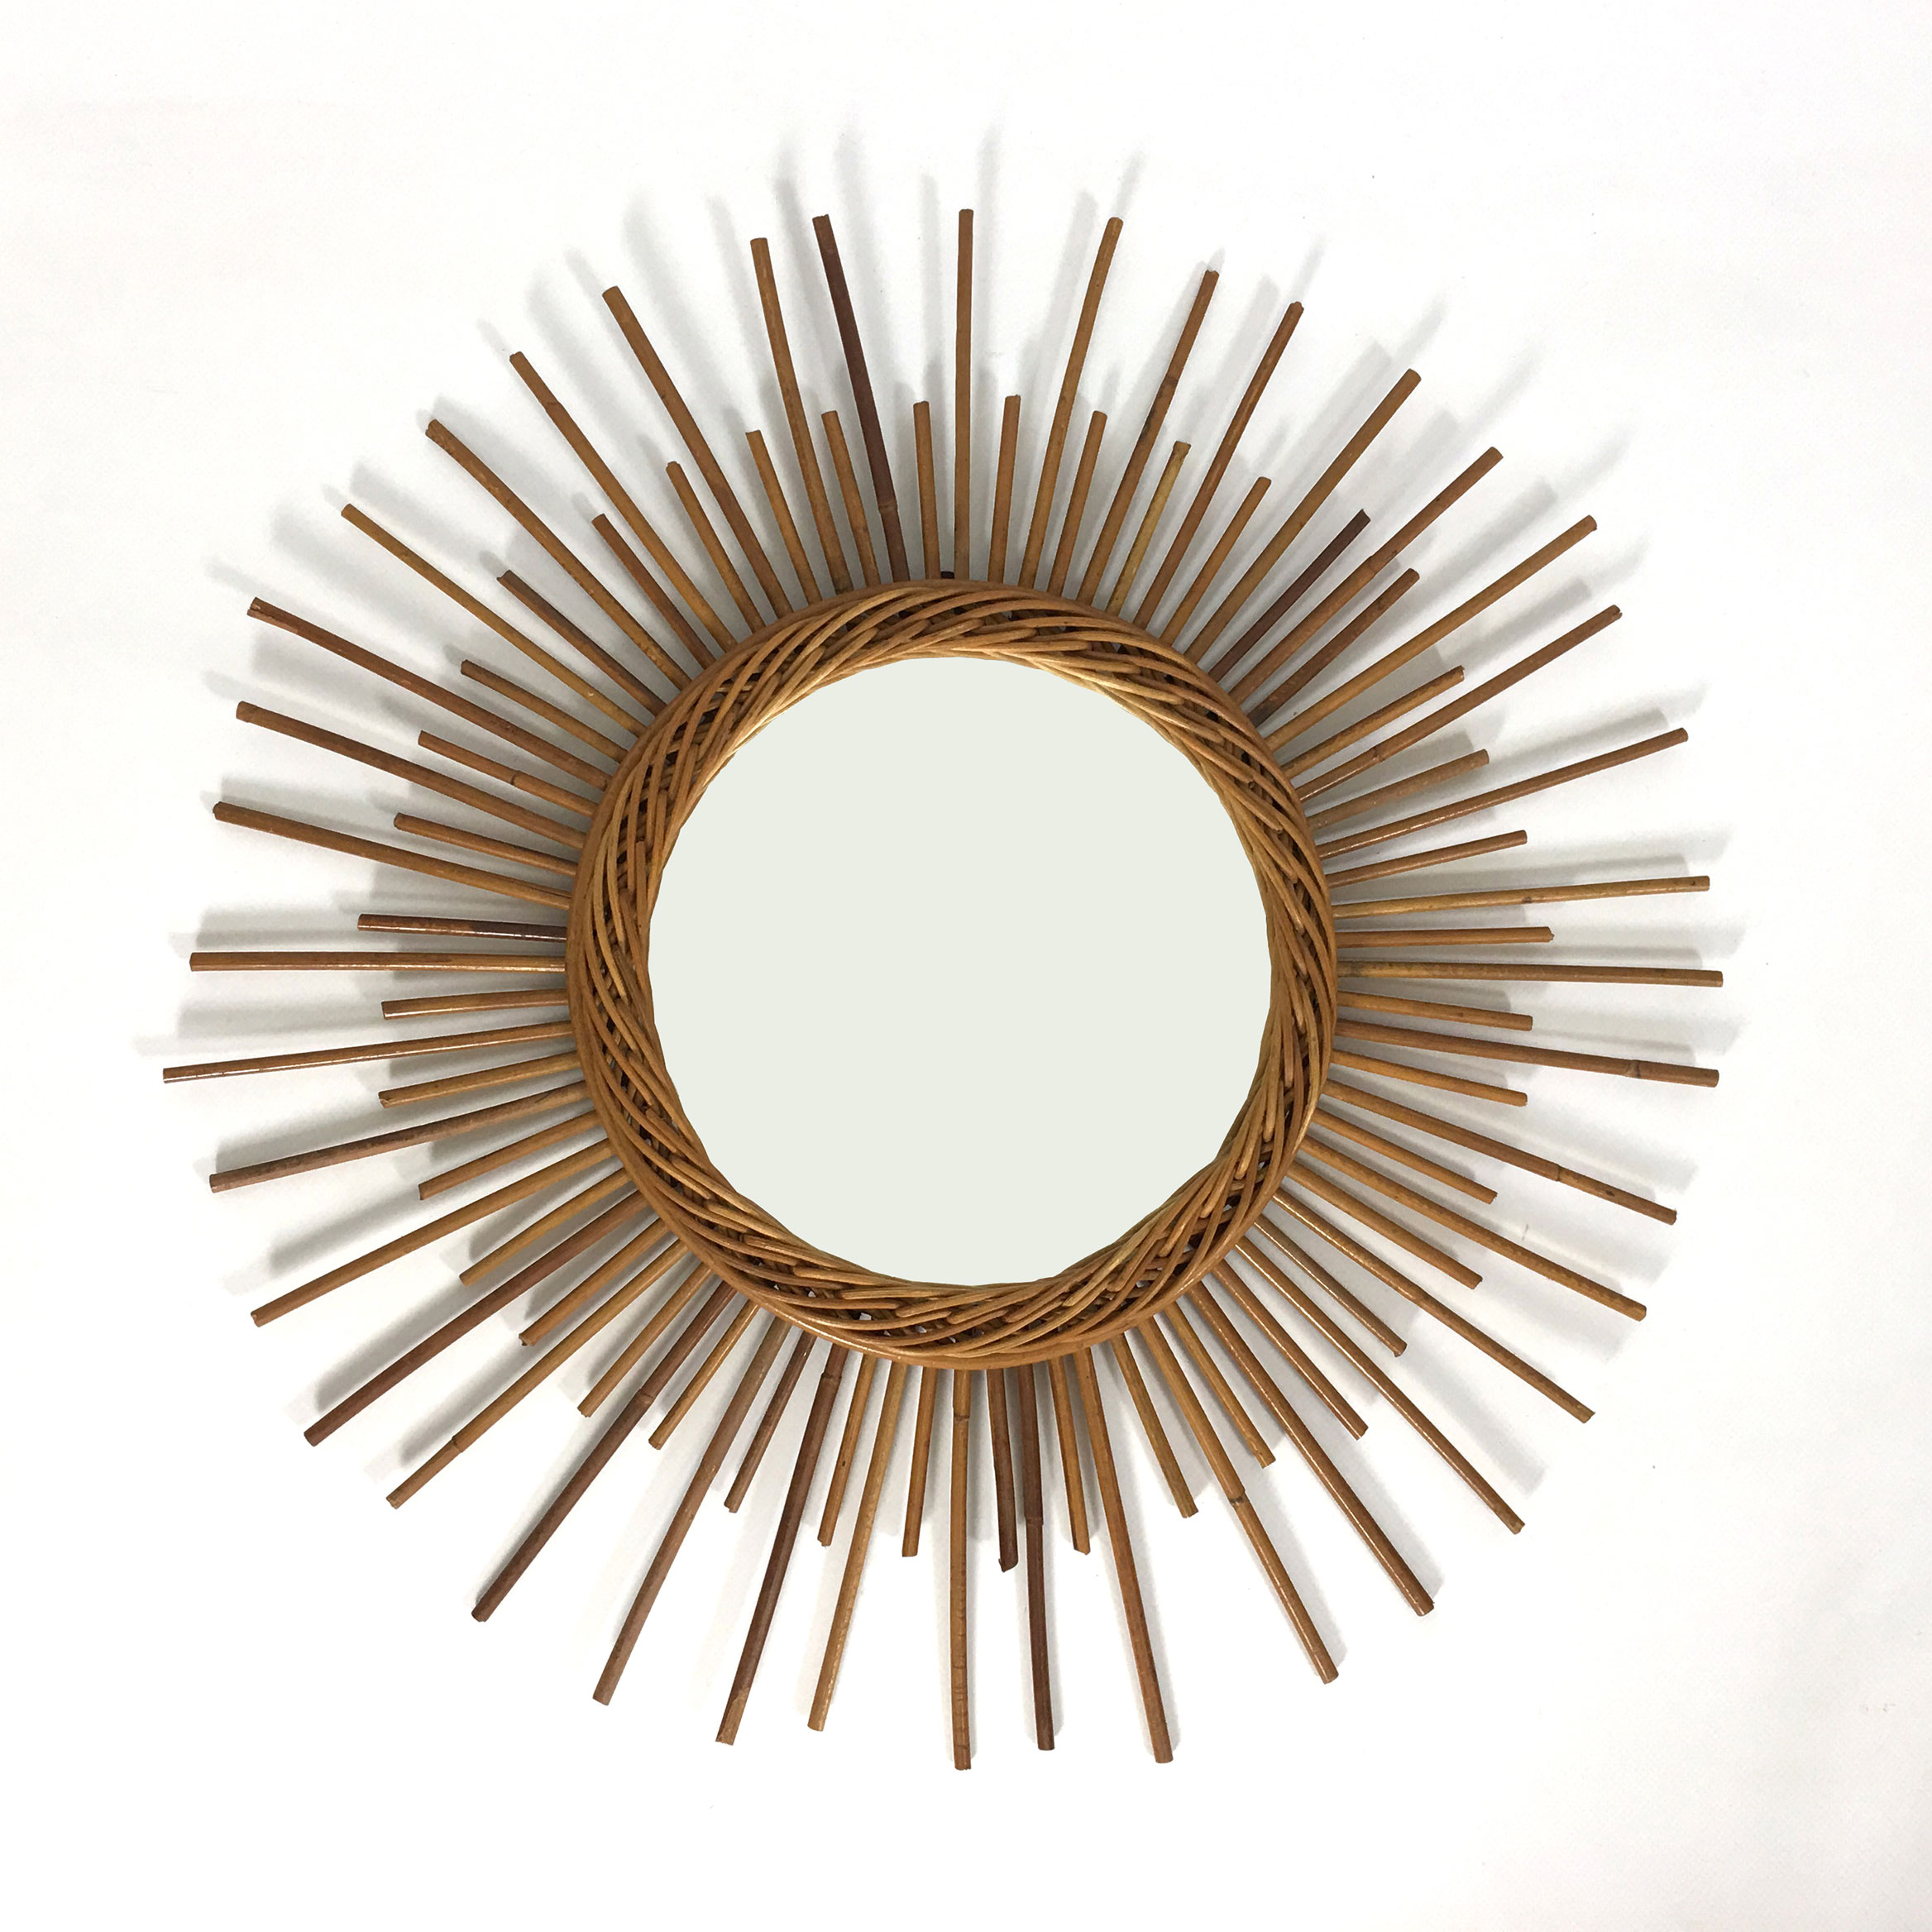 Sun shaped mirror from the sixties.